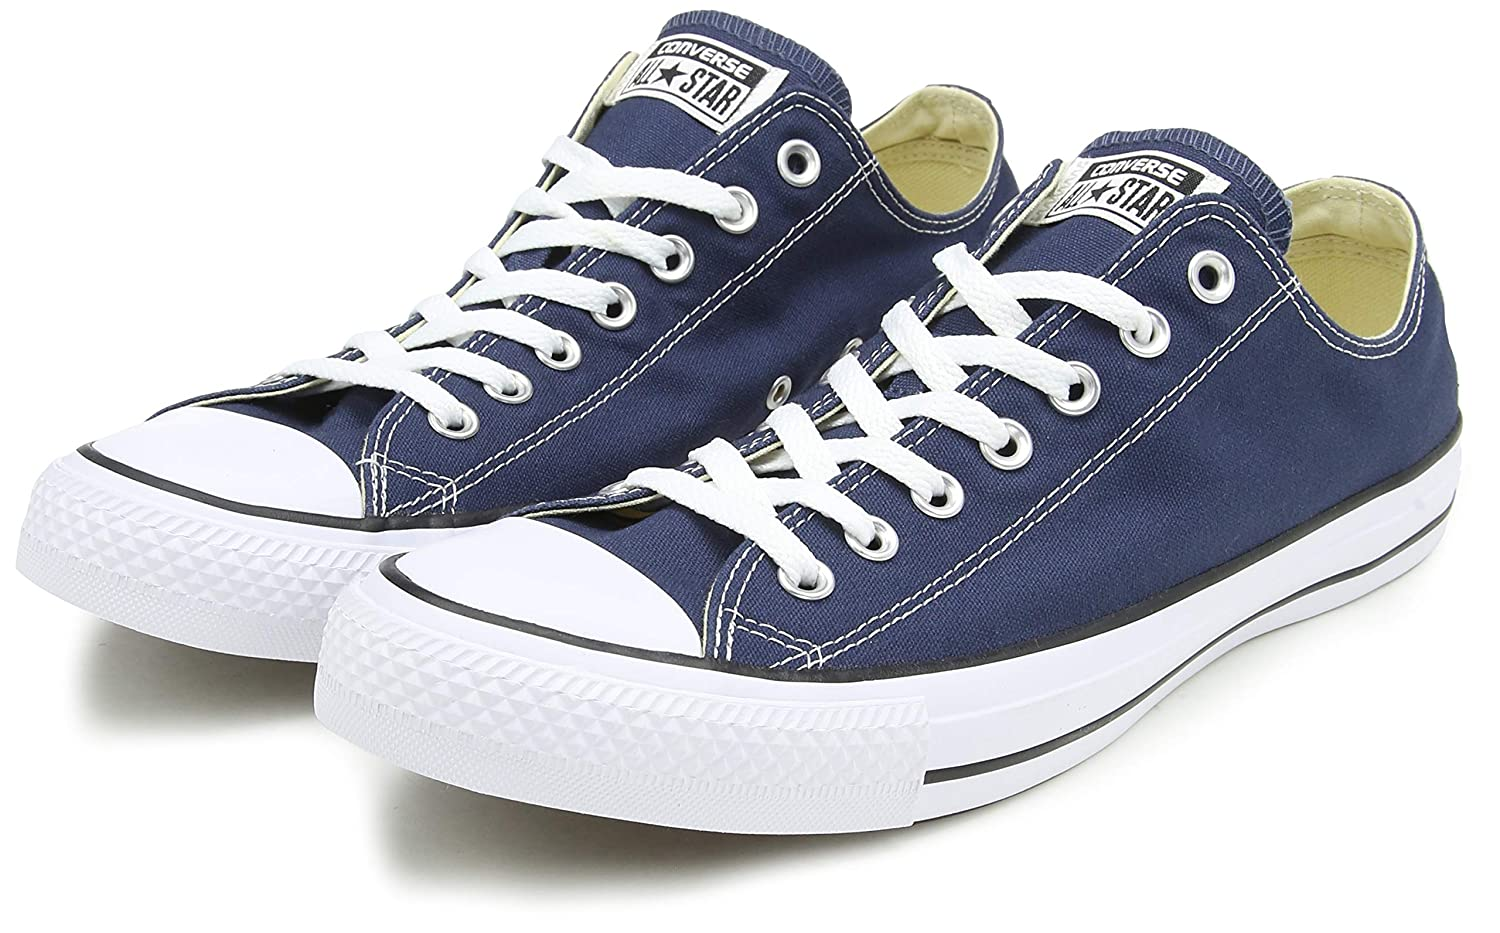 Converse Taylor All Star Ox Navy M969 Baskets Basses Mixte Adulte